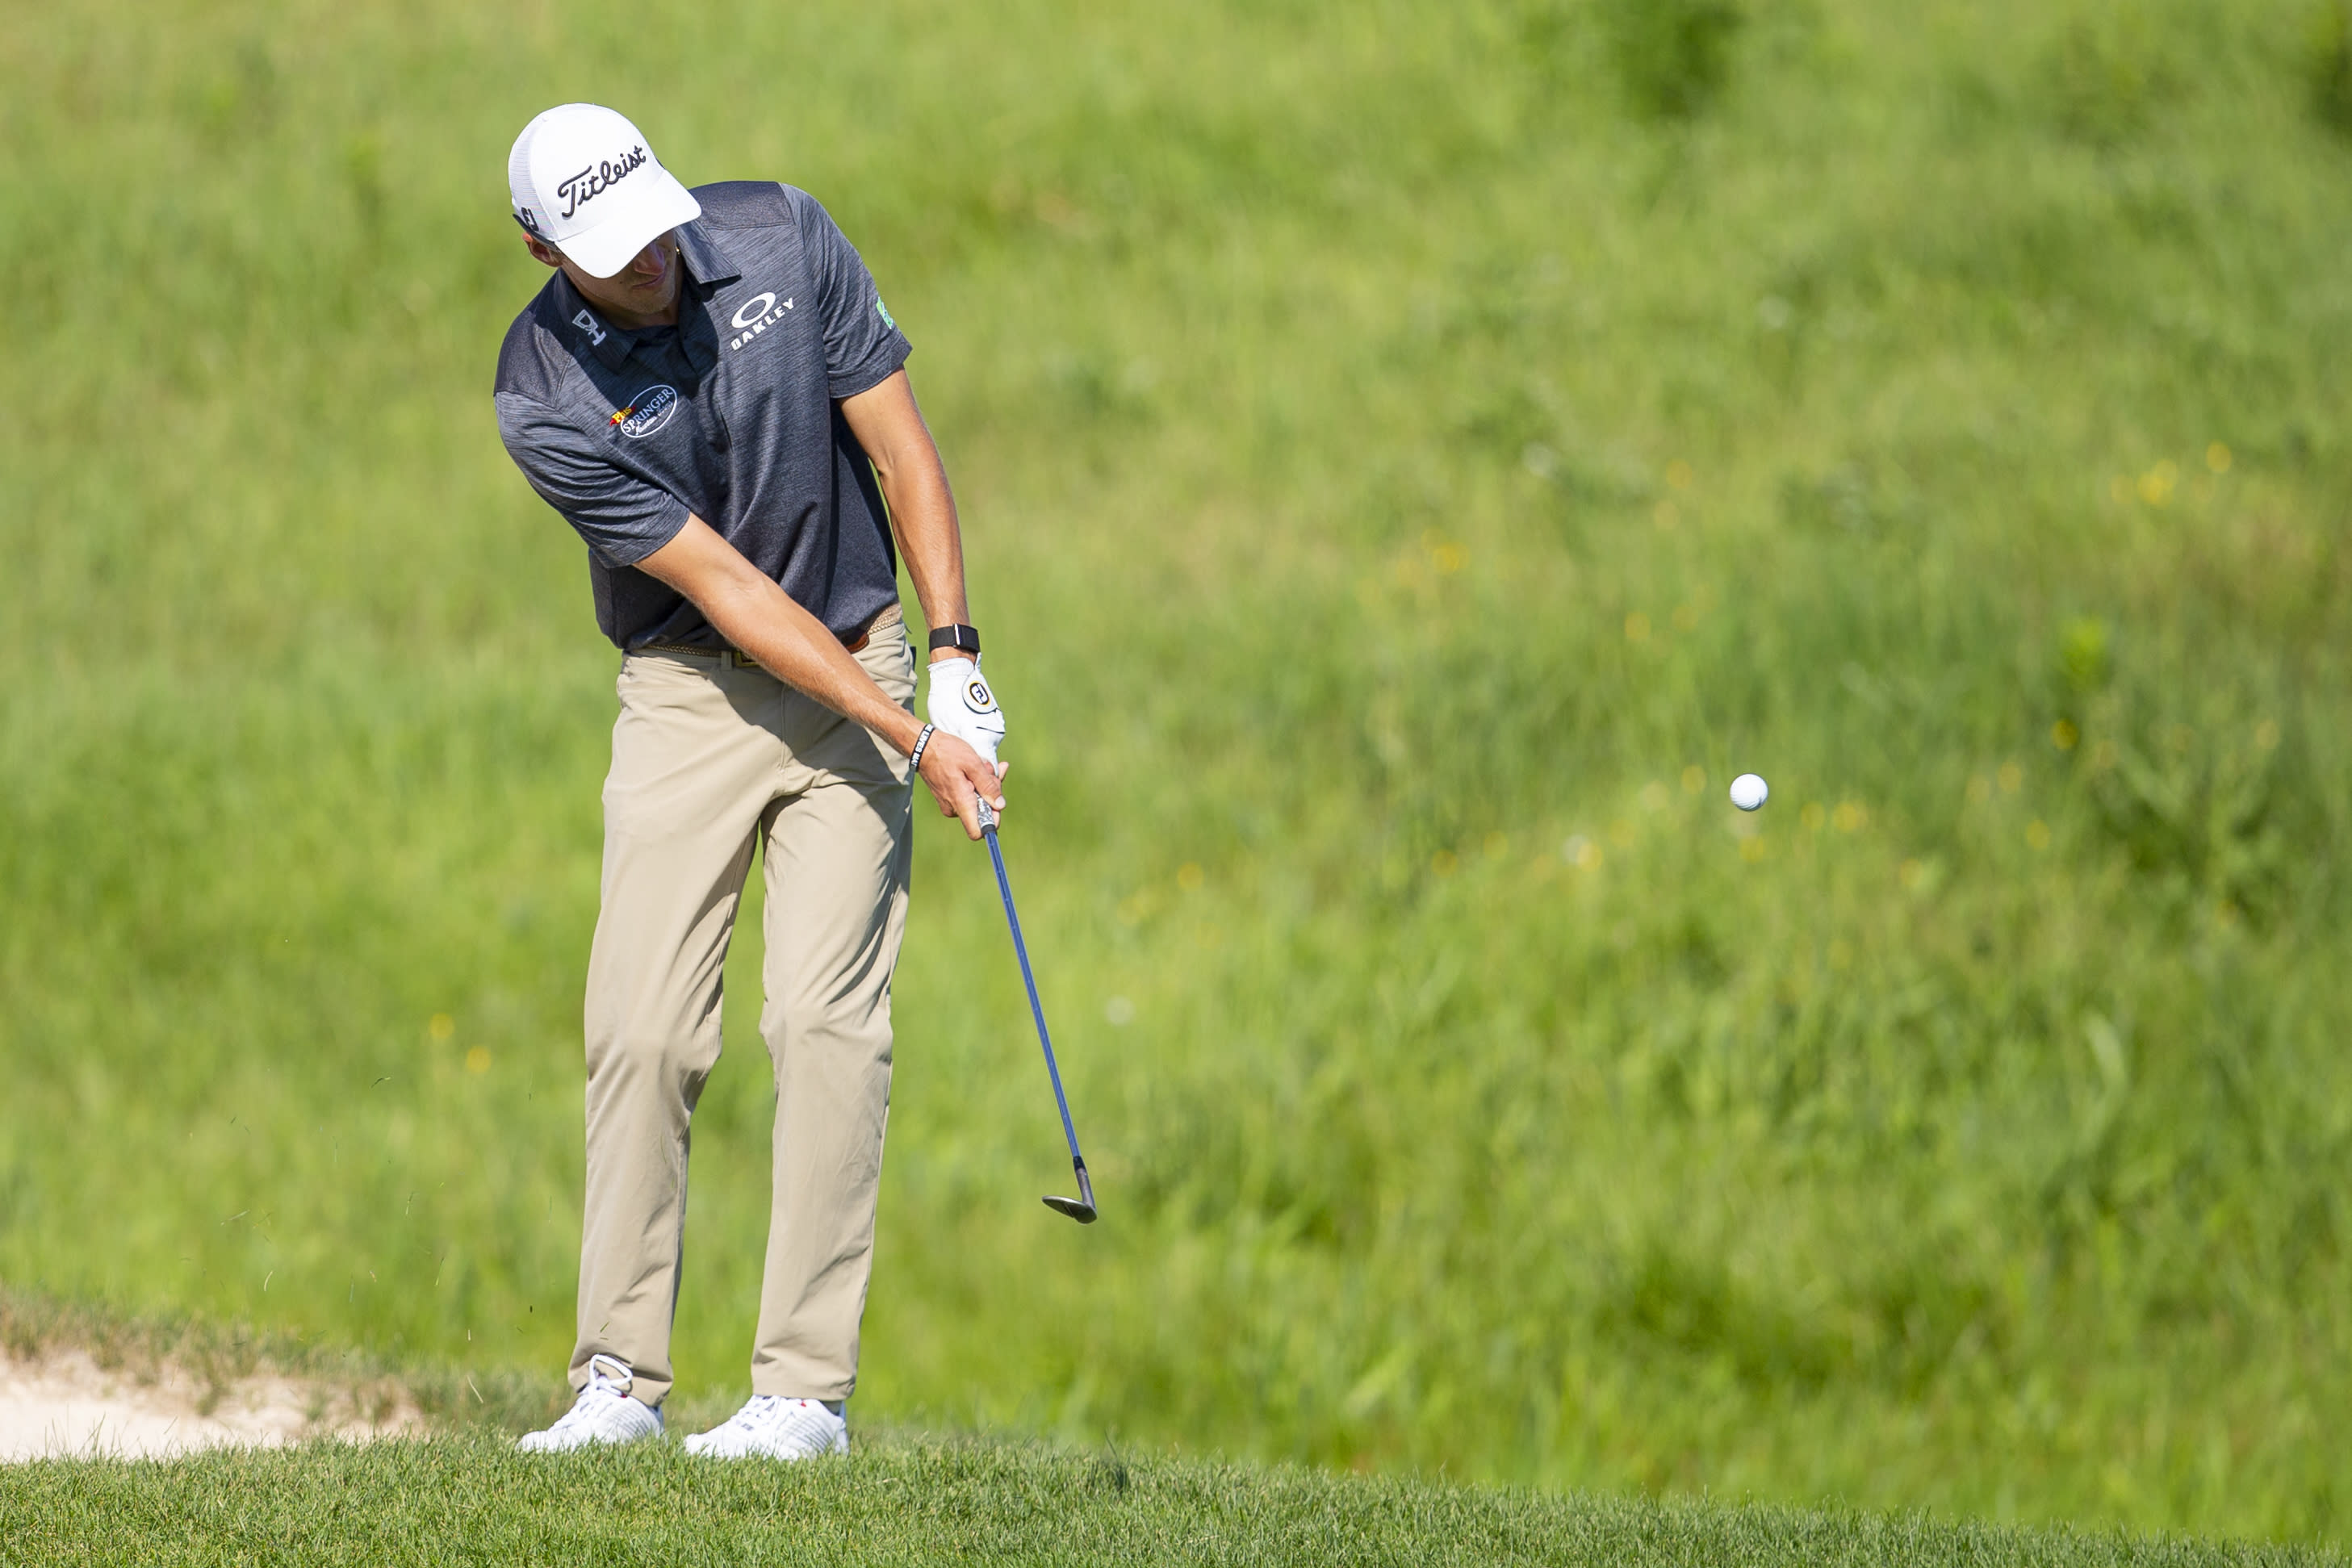 Richy Werenski chips on the 18th hole of the during the first round of the 3M Open golf tournament in Blaine, Minn., Thursday, July 23, 2020. (AP Photo/Andy Clayton- King)